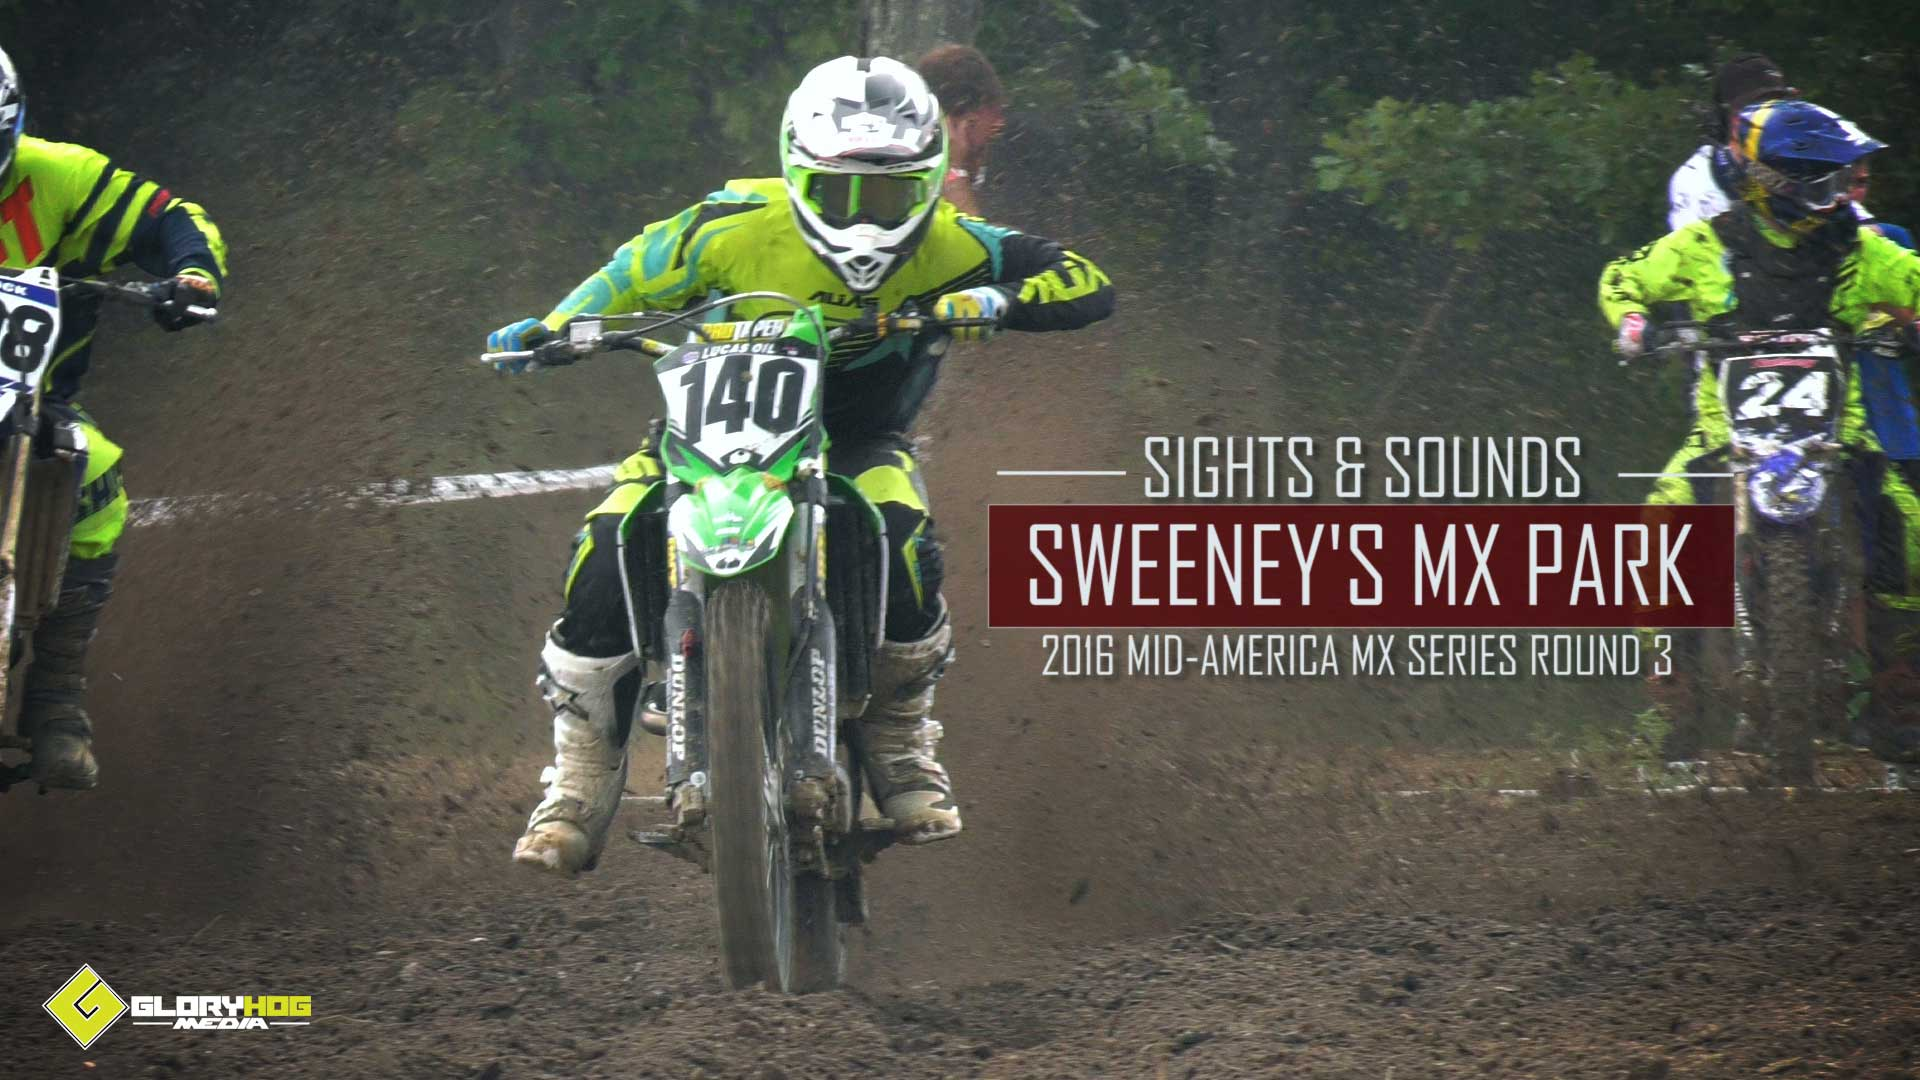 Sights & Sounds: MAMS Round 3 Sweeney's MX - Glory Hog Media